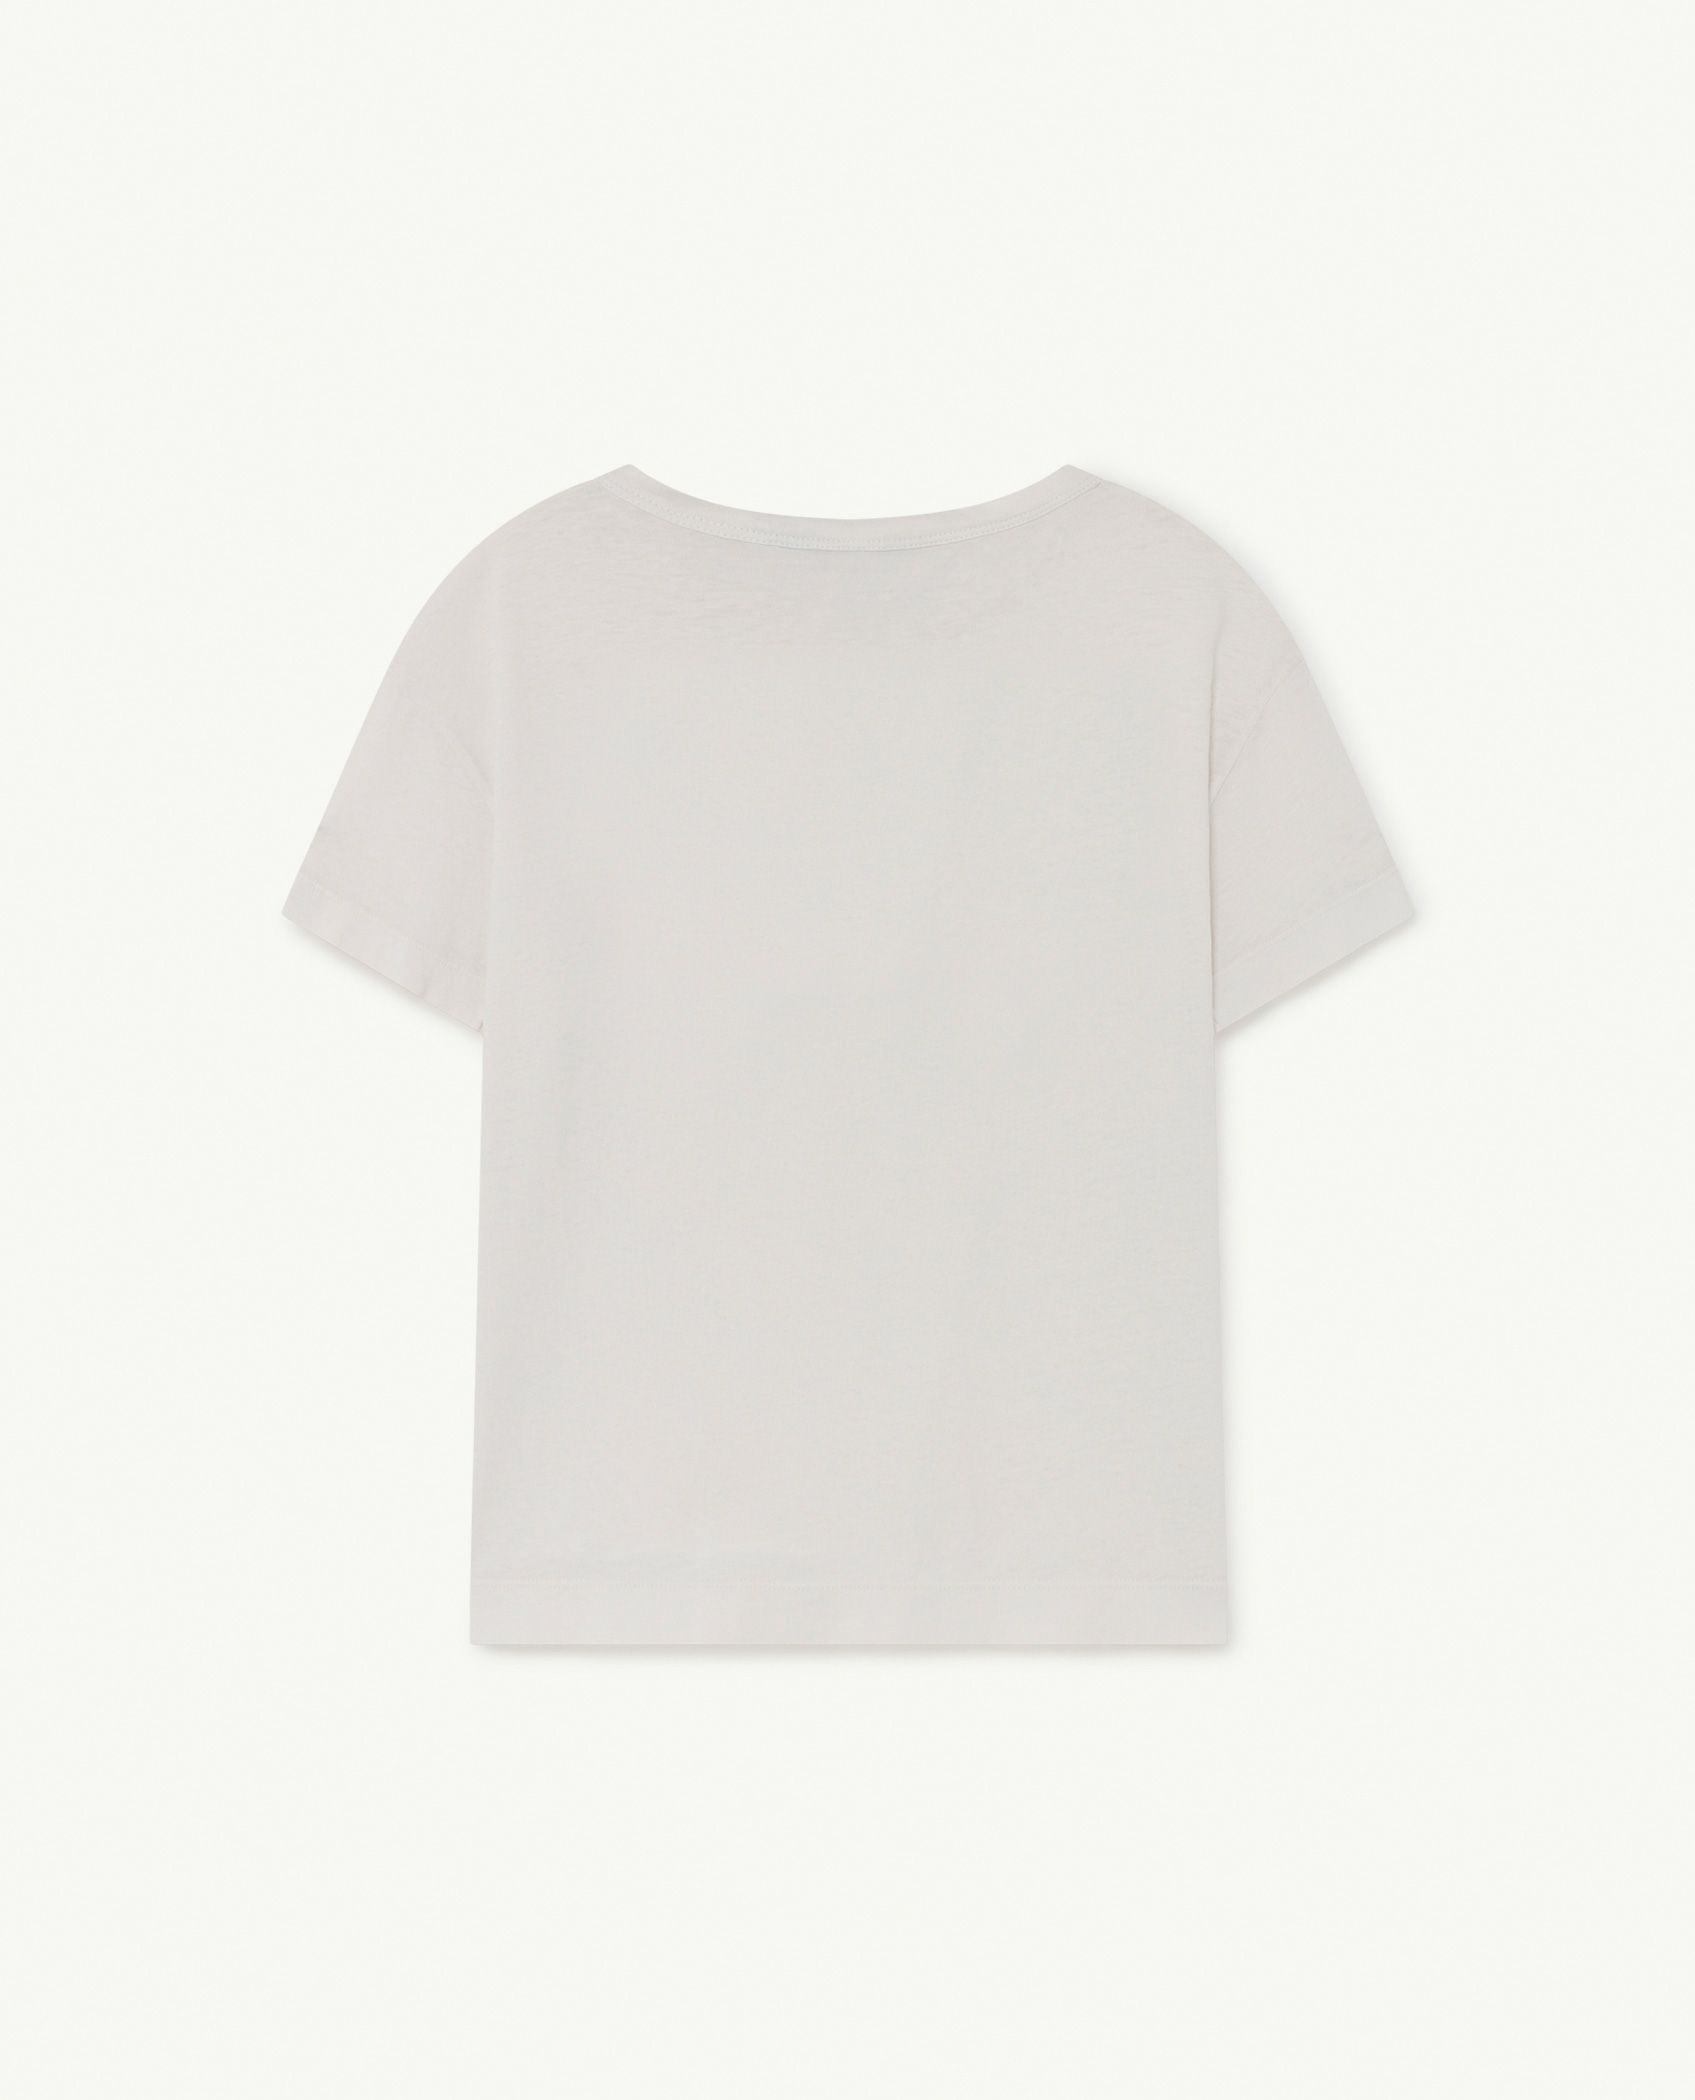 White The Animals Rooster T-Shirt img-2